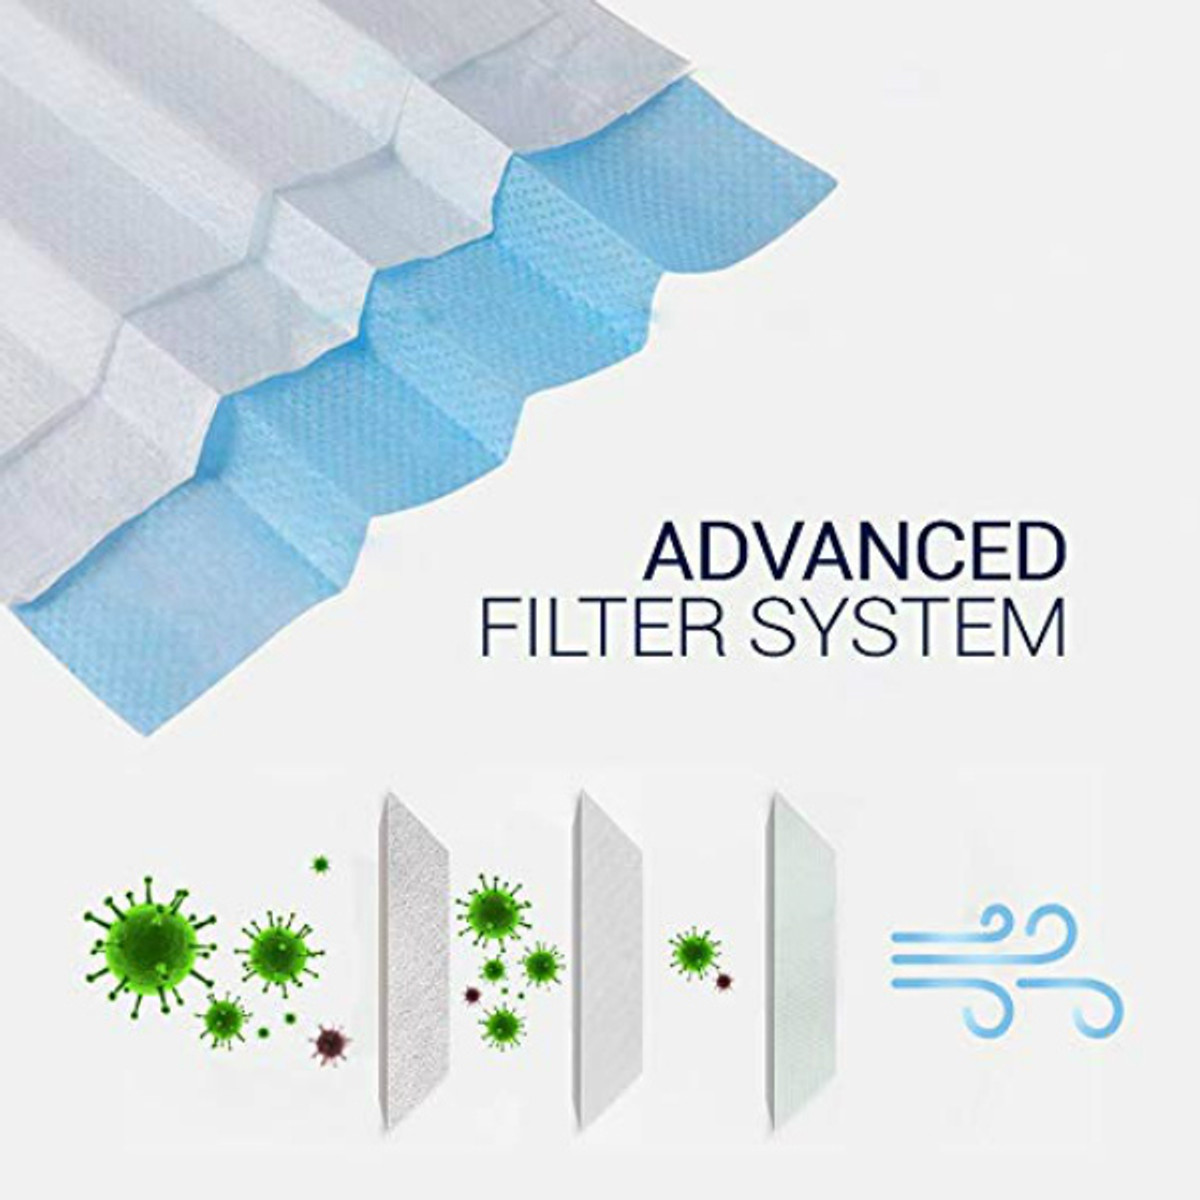 Masks Surgical Antiviral Layers Face 3 Non-woven Pcs 50 Mask Medical - Filter